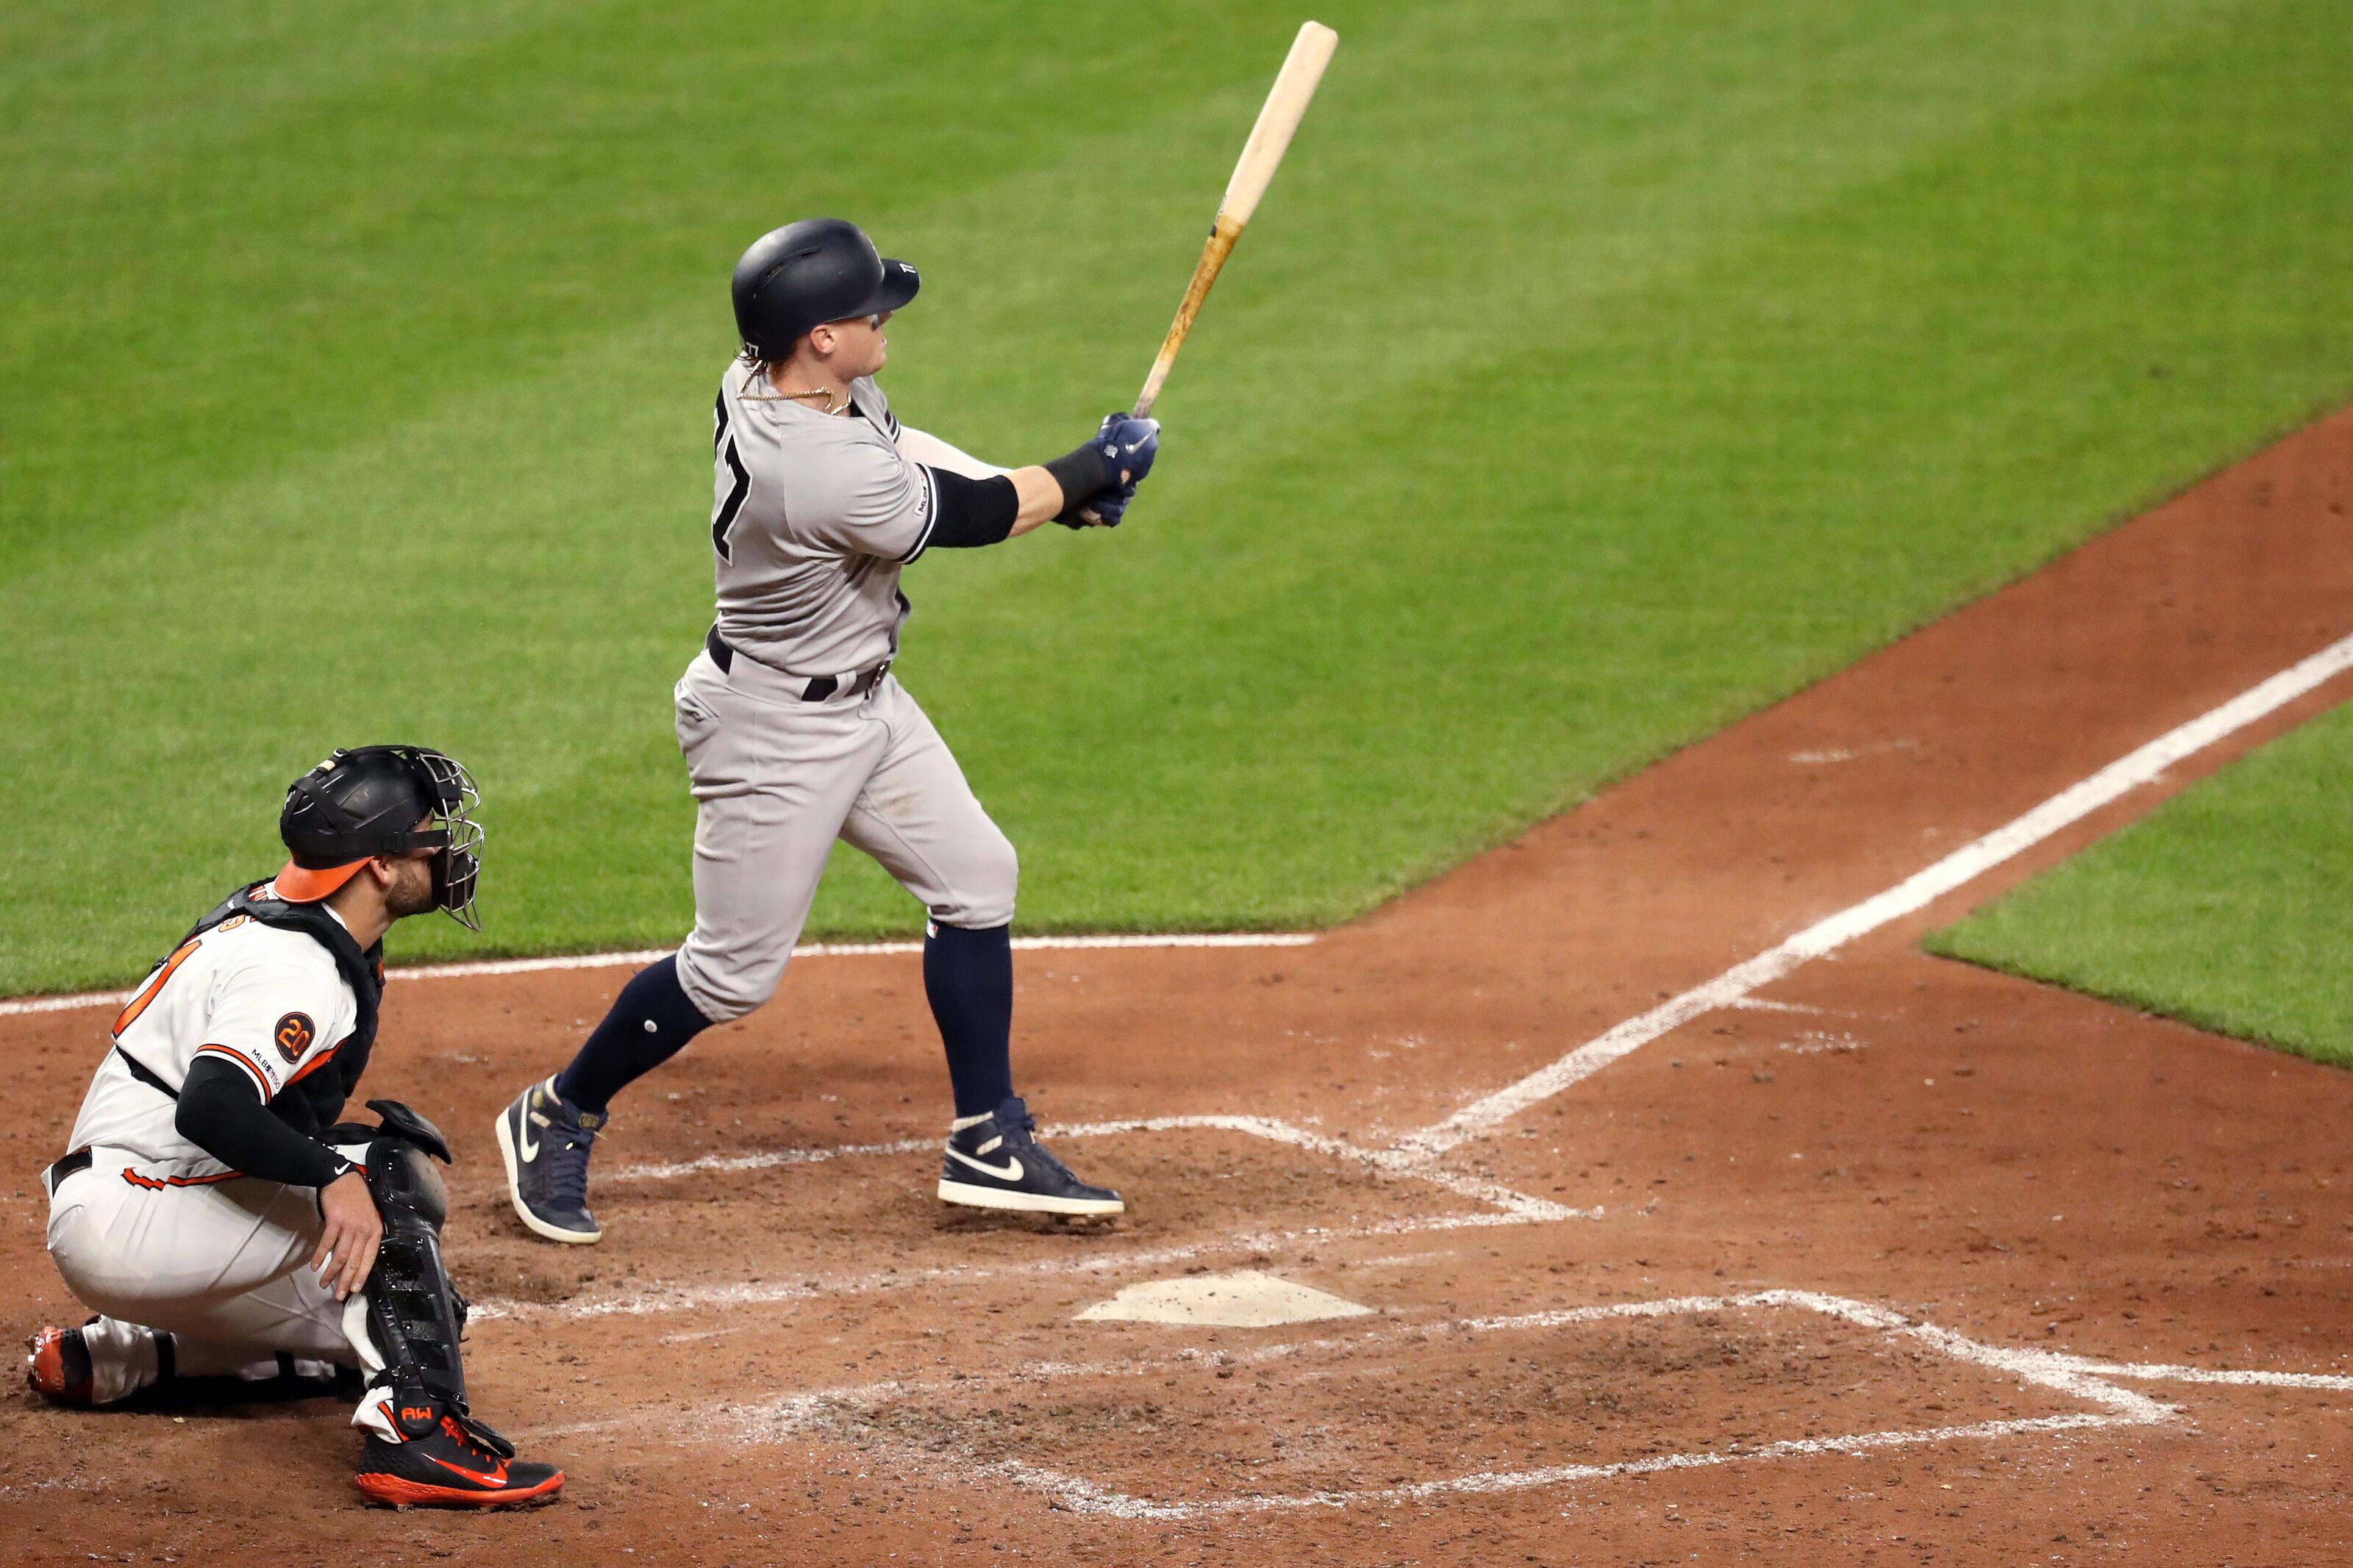 Yankees Clint Frazier has night to remember at Triple-A Scranton